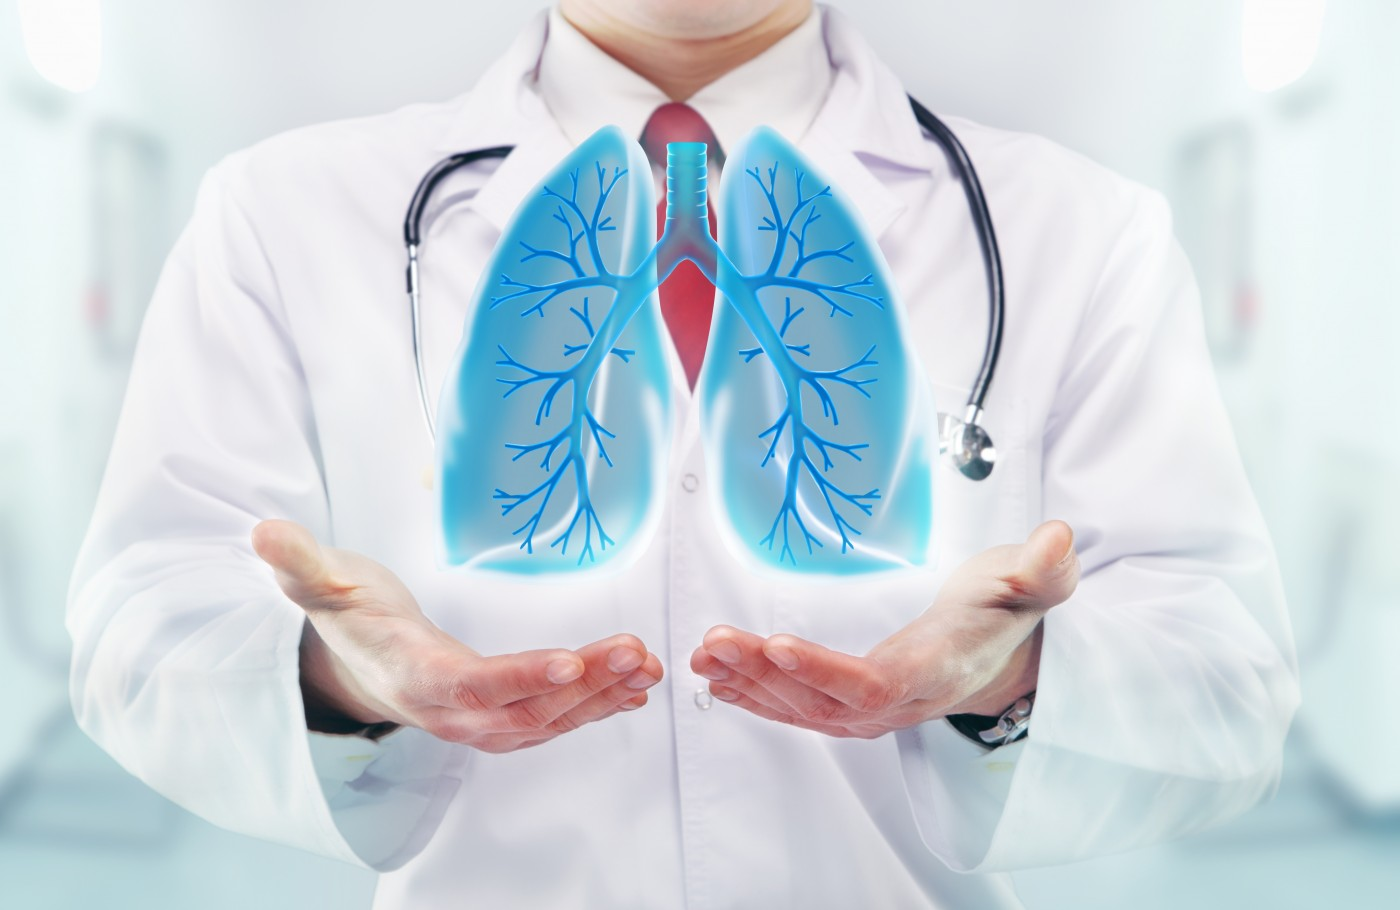 Resveratrol May Prevent Pulmonary Arterial Hypertension Development According to Study